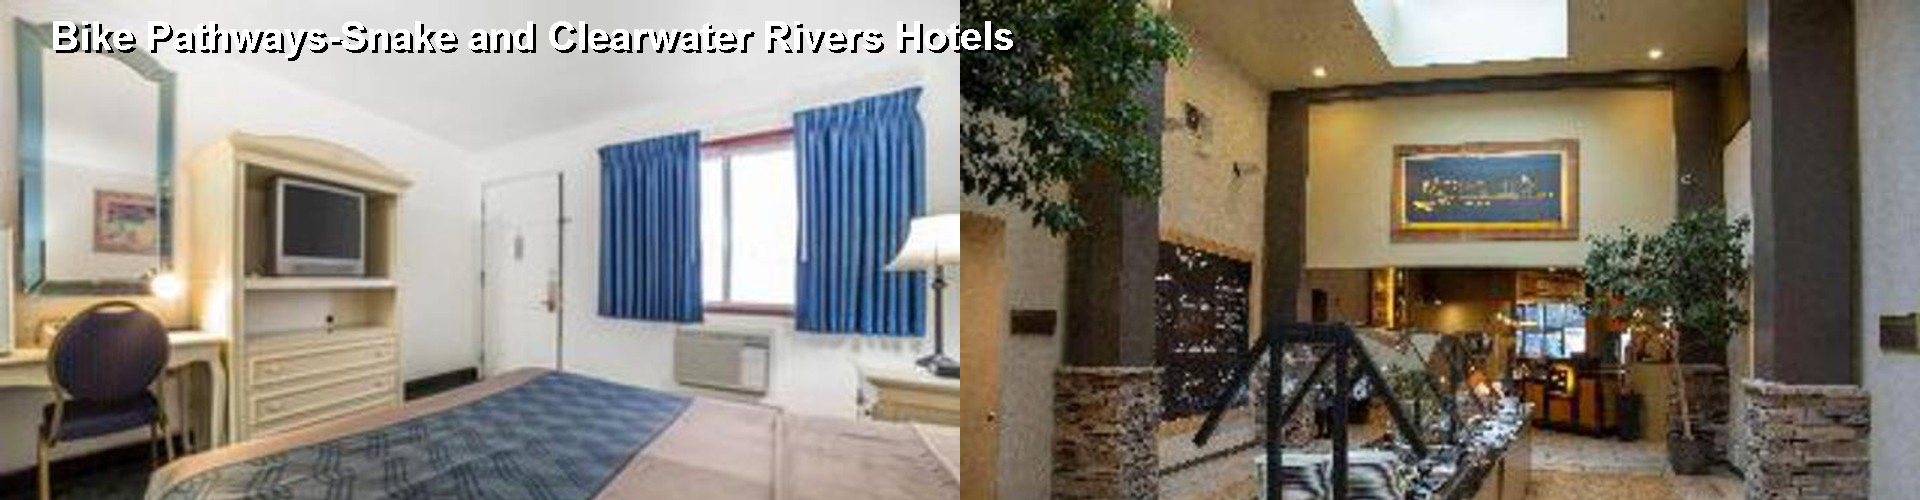 5 Best Hotels near Bike Pathways-Snake and Clearwater Rivers